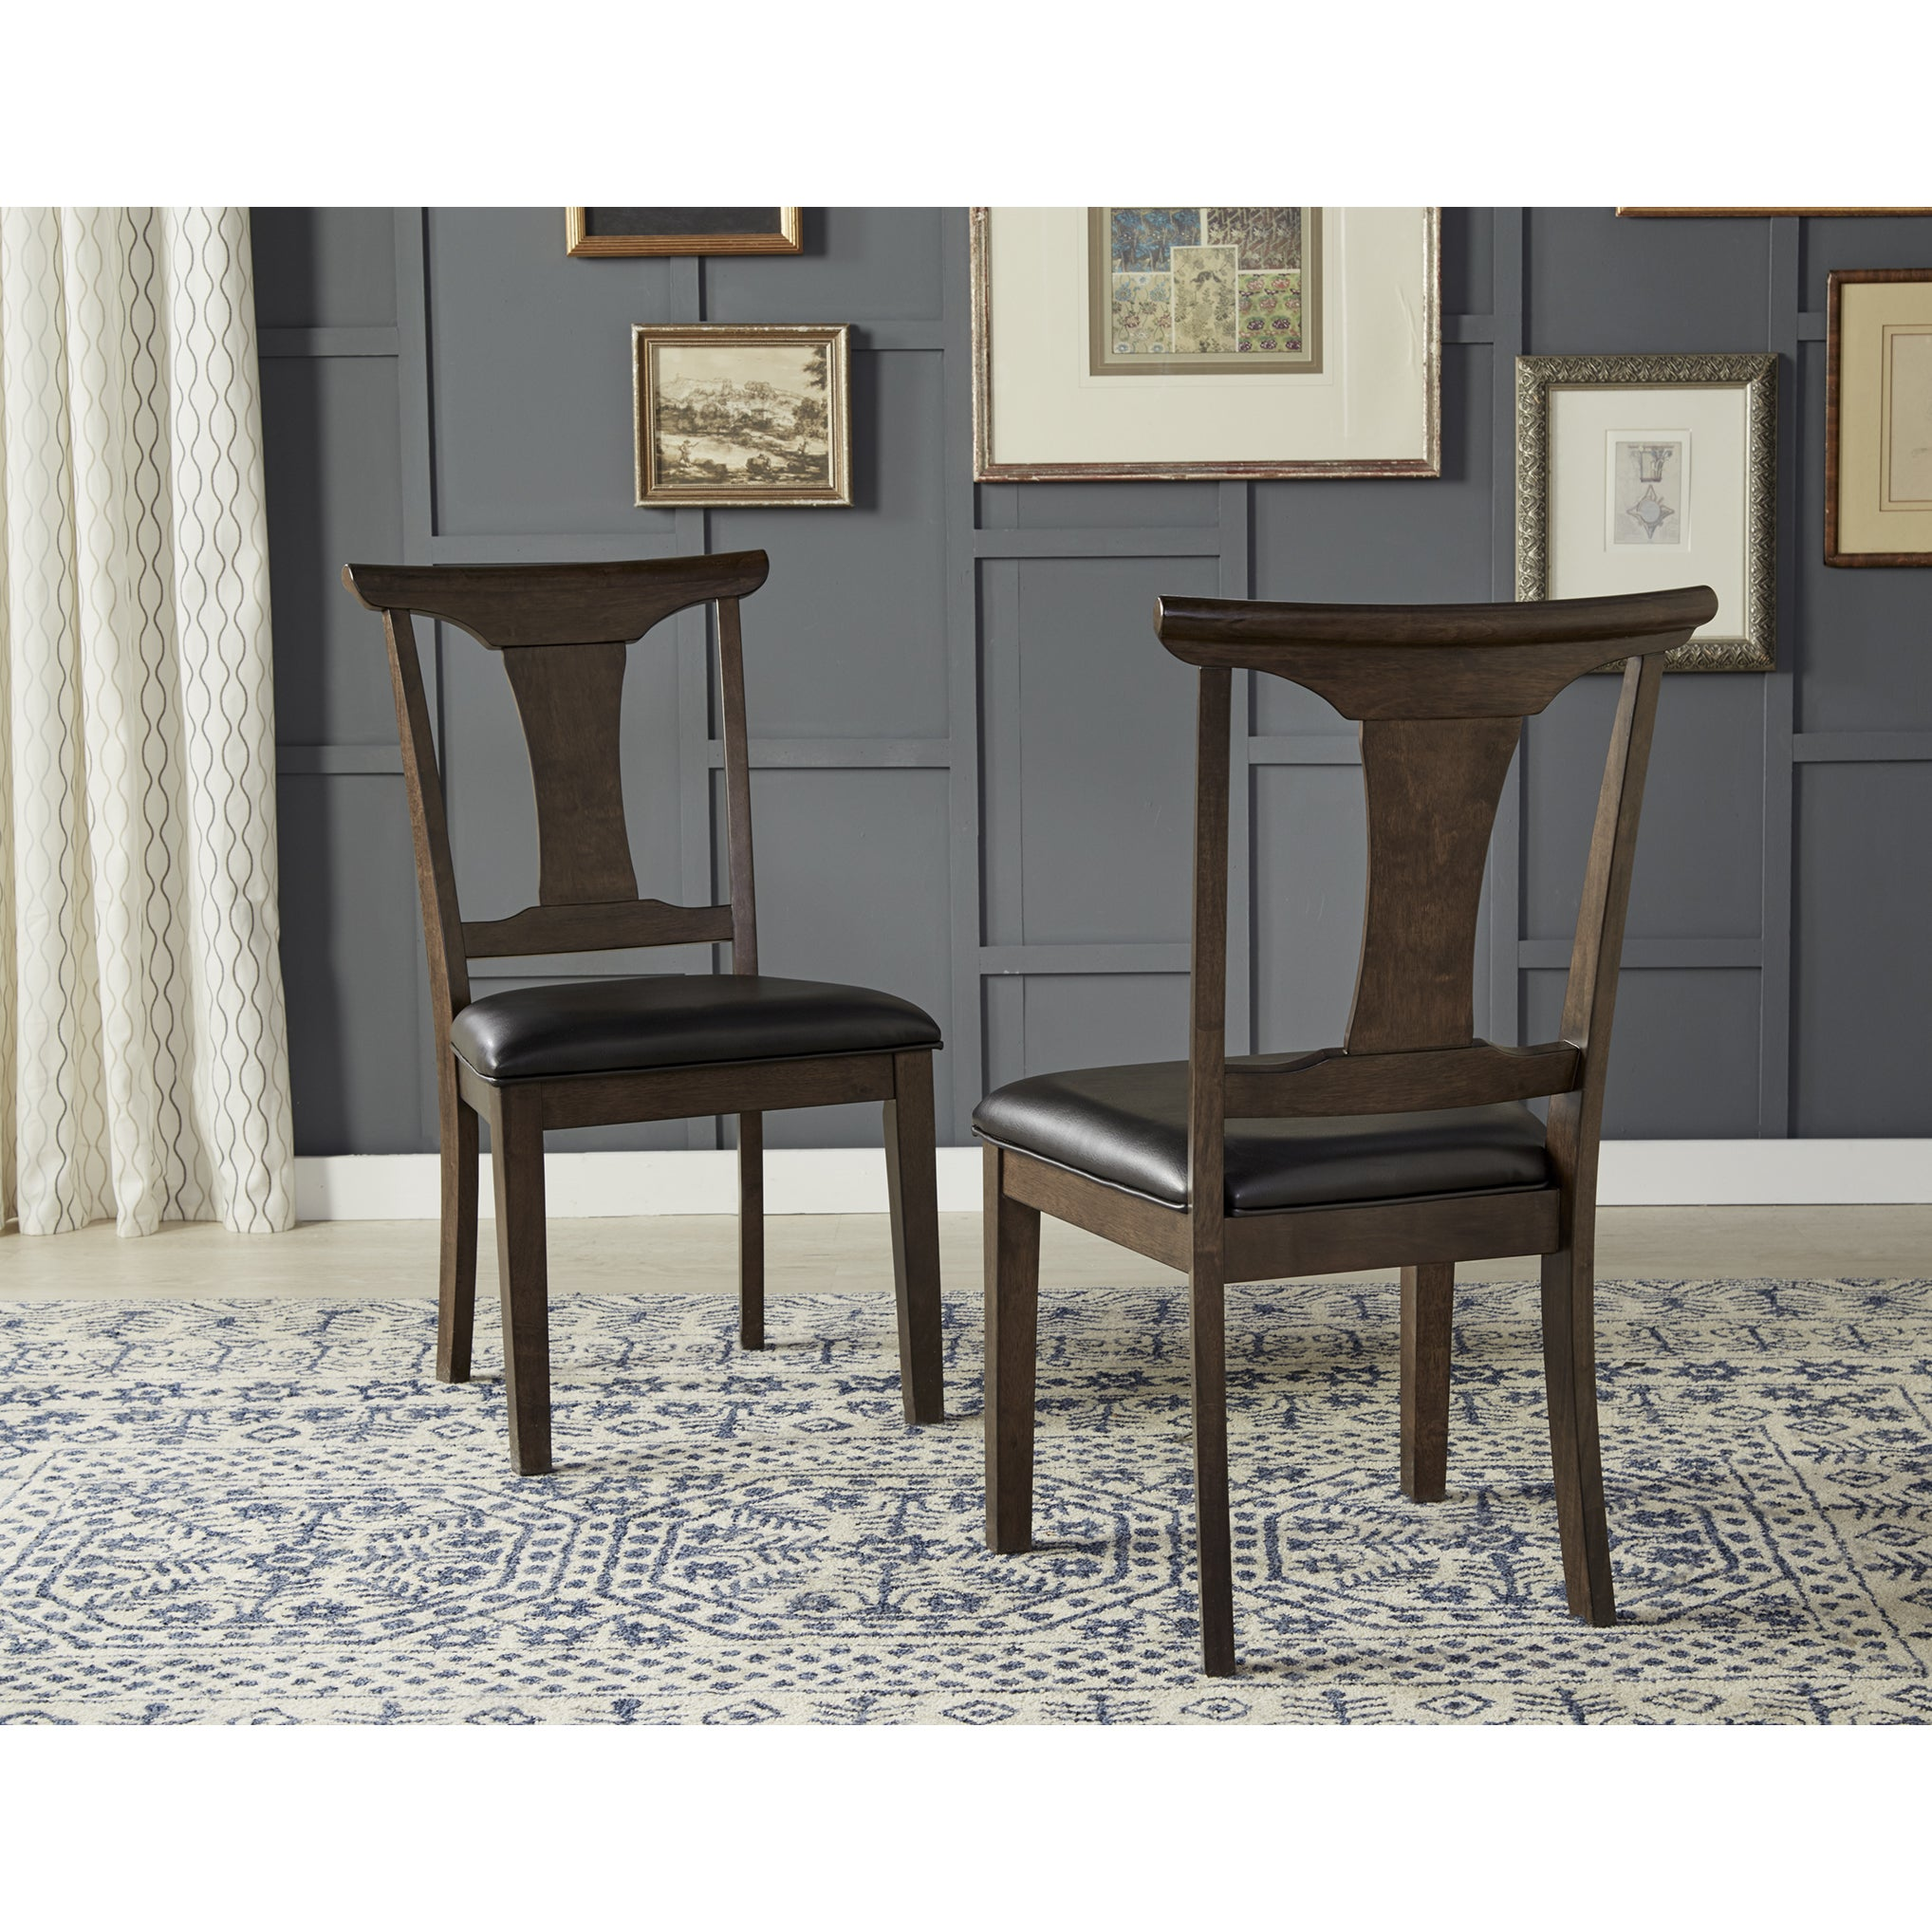 Pleasant Simply Solid Issa Espresso Wood Faux Leather Dining Chairs Set Of 2 Beatyapartments Chair Design Images Beatyapartmentscom